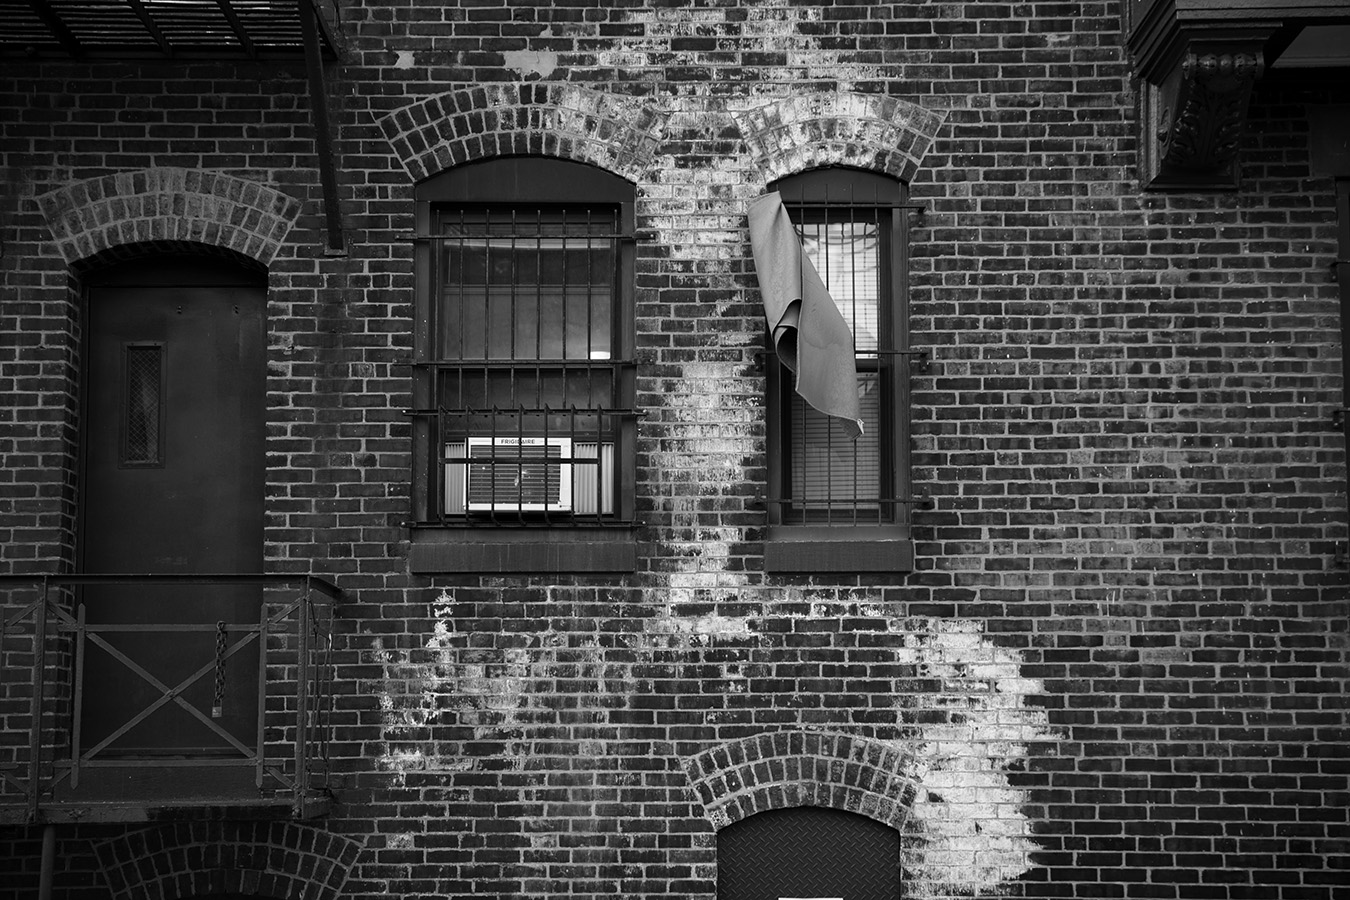 6_Frigid_Casey Egner_Street Photography_Ornament_Brick_Black and White_facade copy